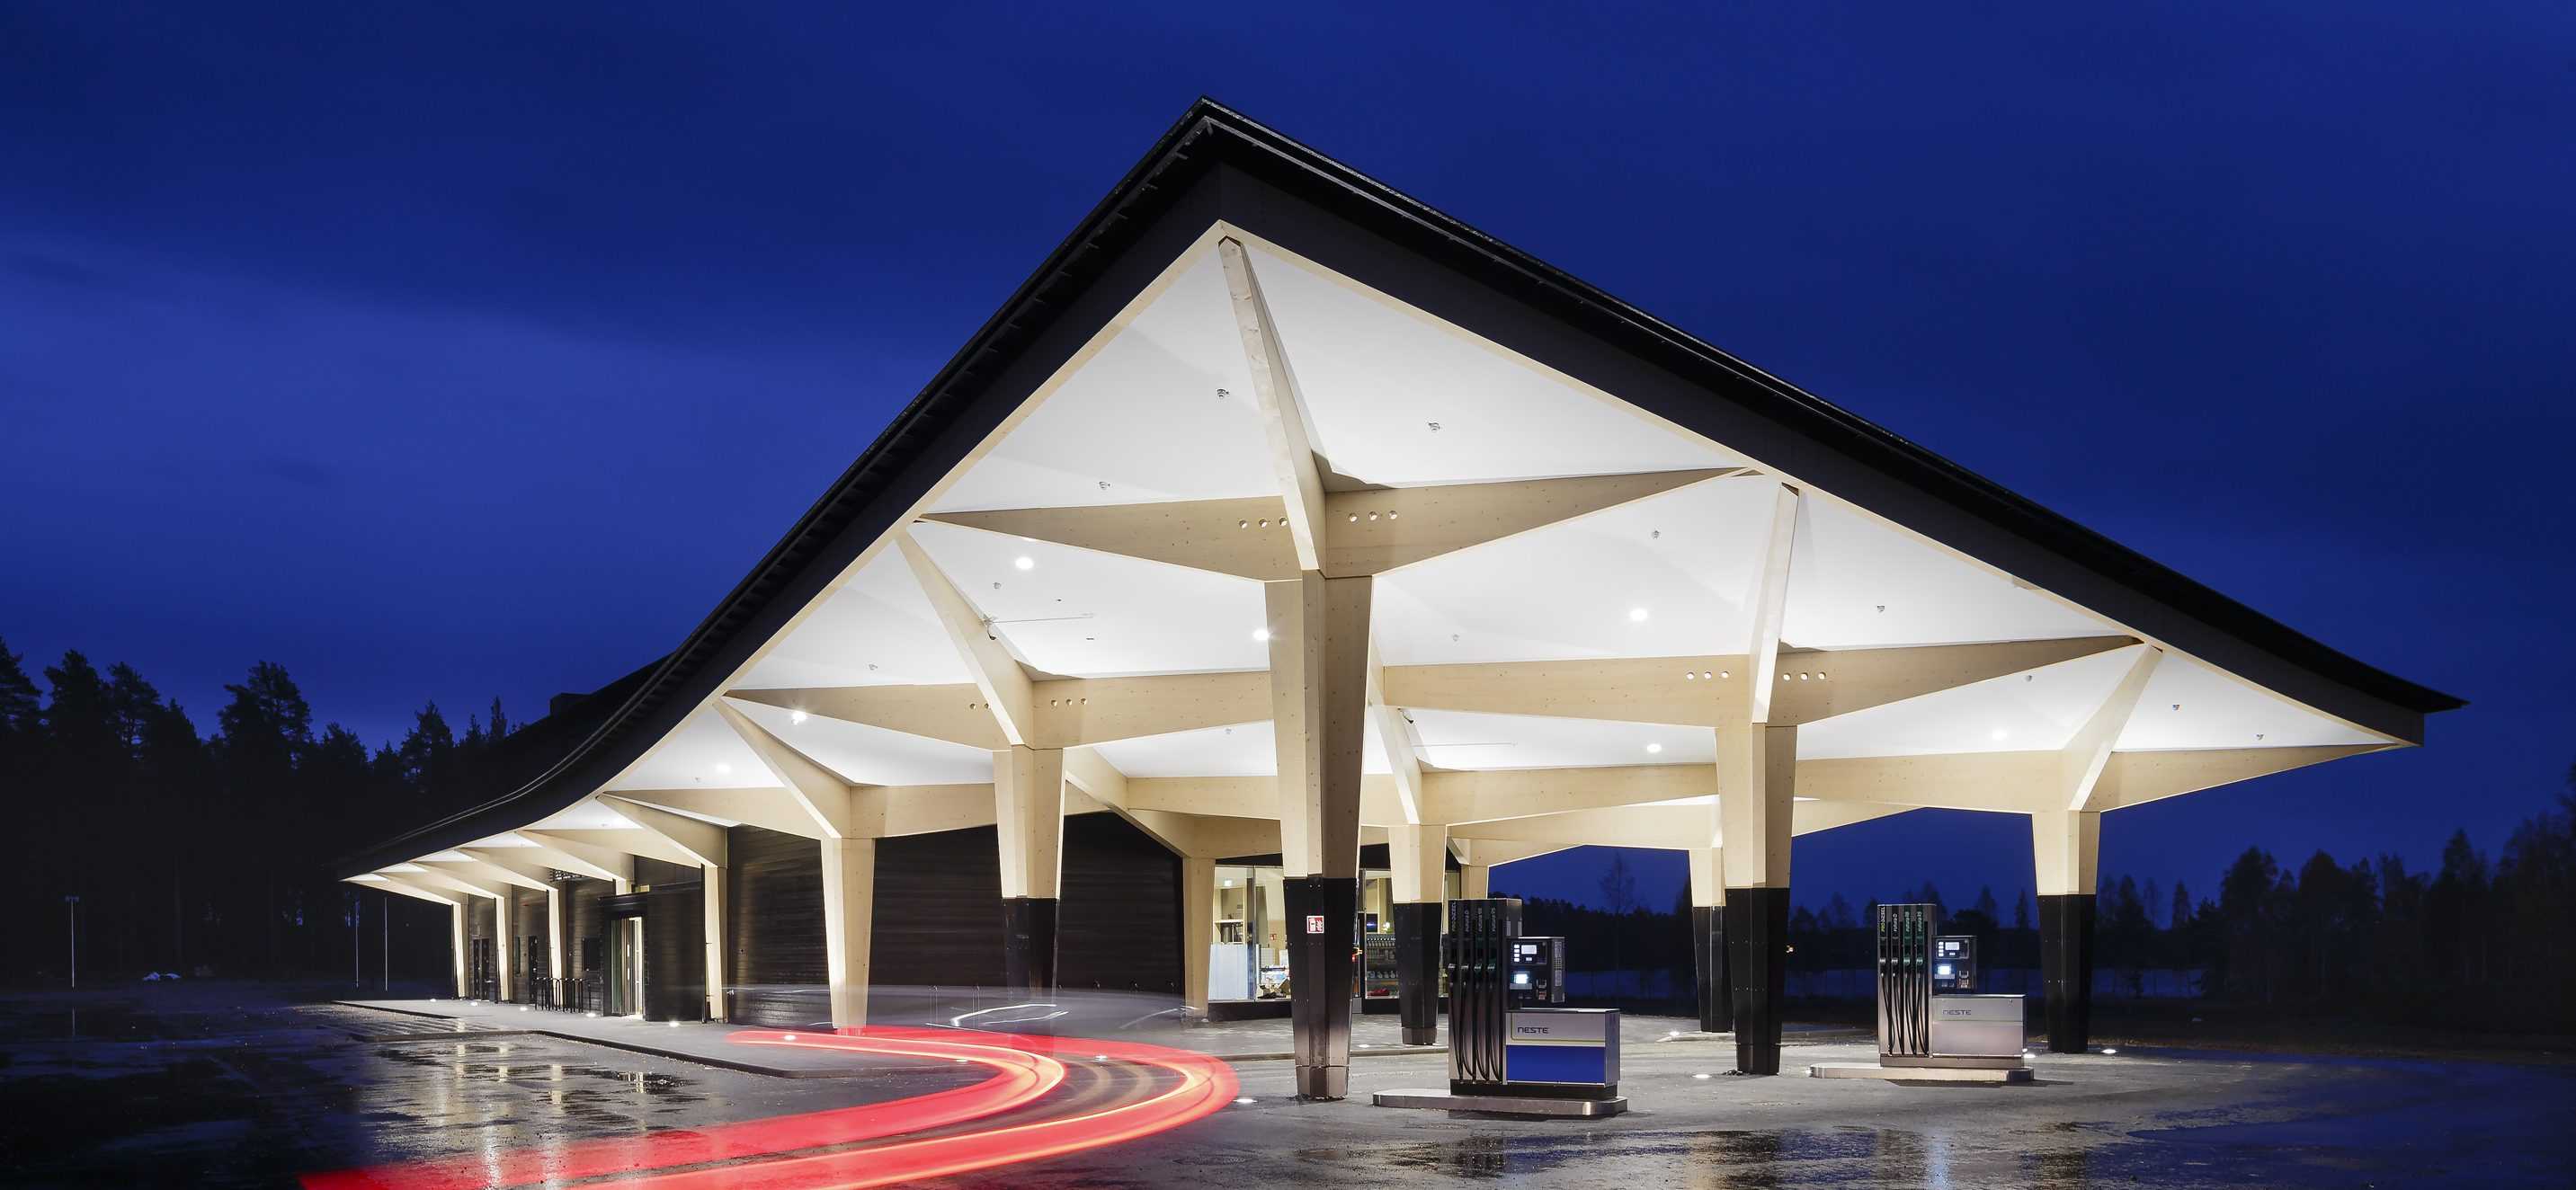 The 10 Most Beautiful Gas Stations In World Ranked